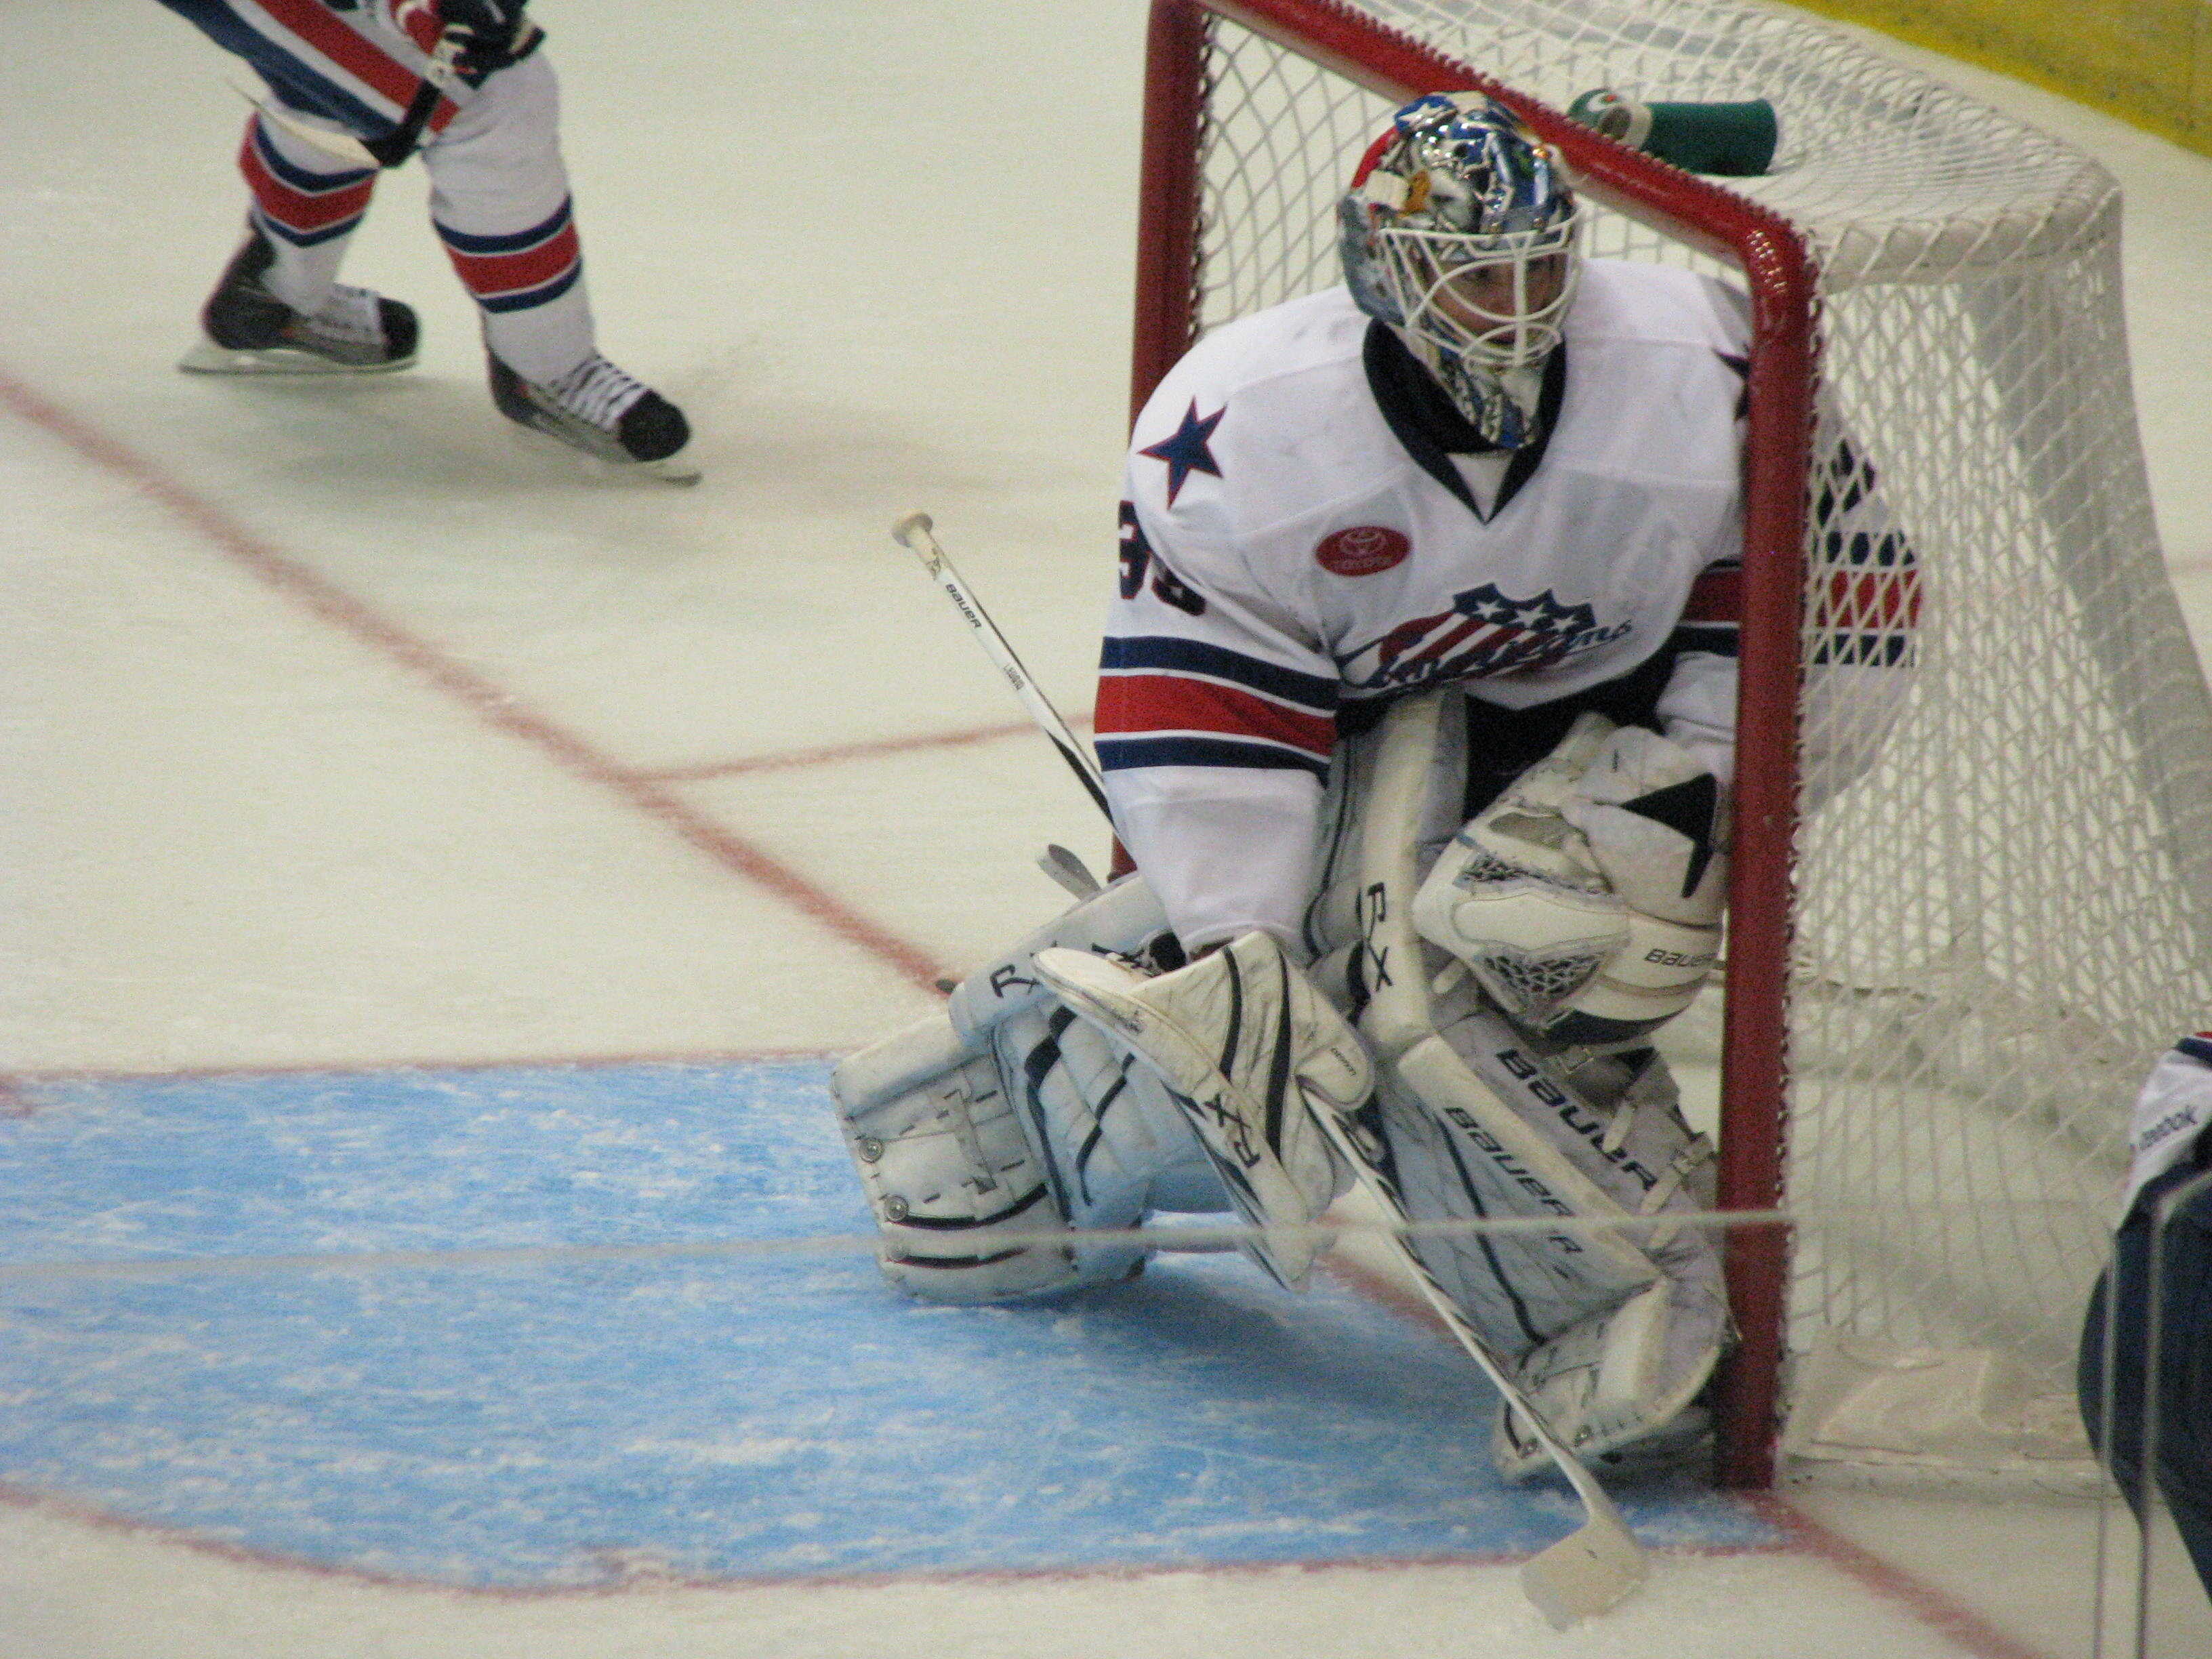 Leggio Leads the Amerks to the Second Half of the Season with a Win